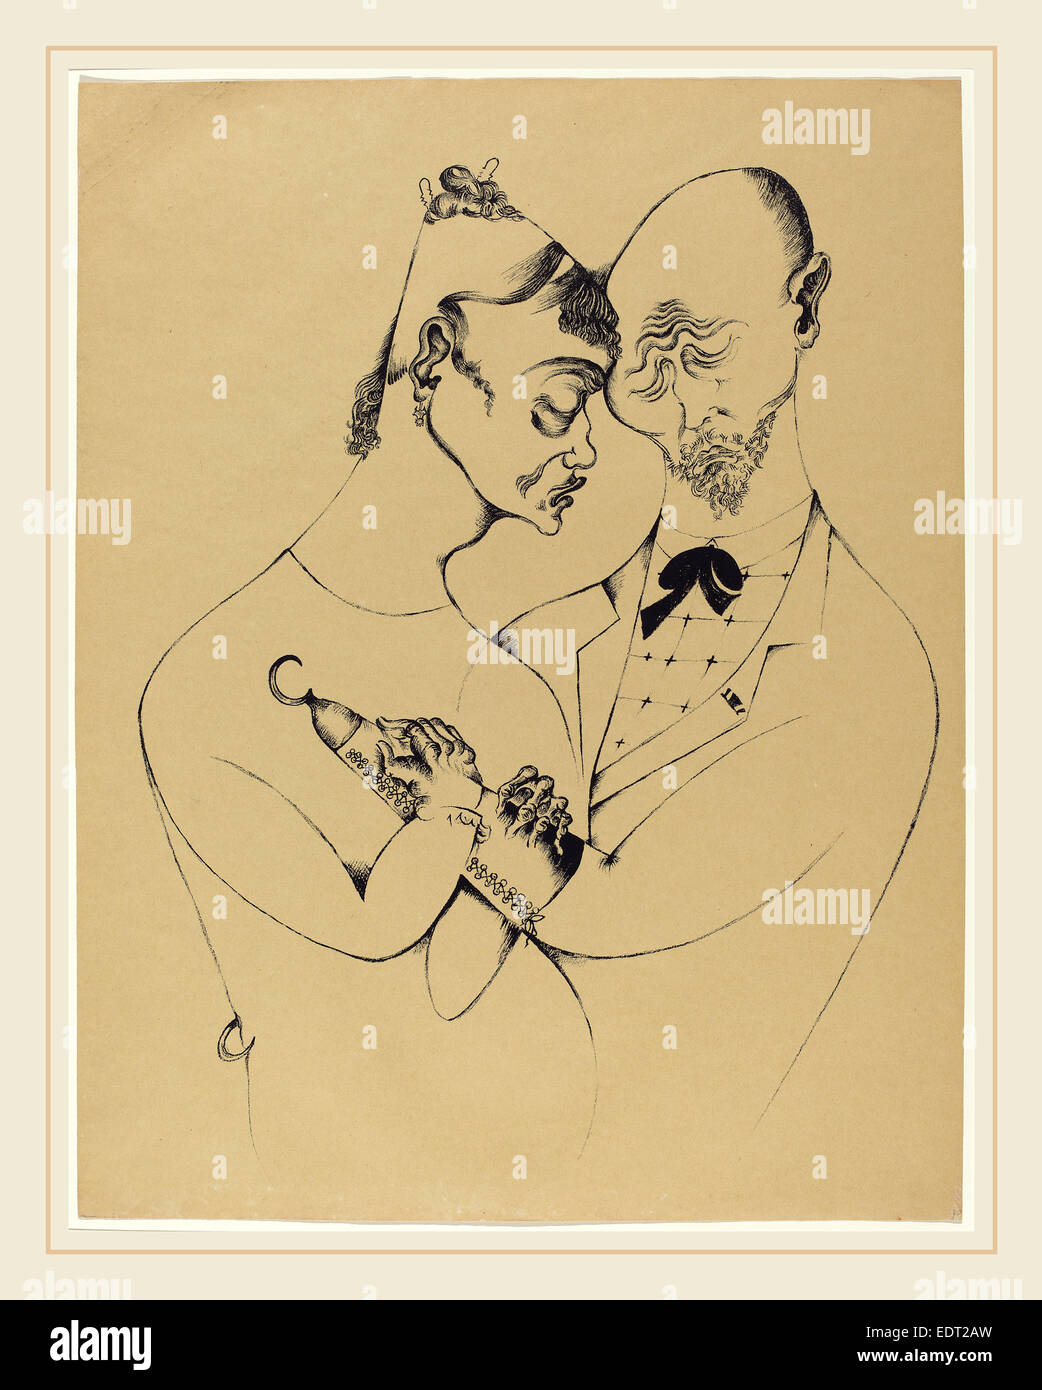 Heinrich Hoerle, Das Ehepaar (The Married Couple), German, 1895-1936, 1920, lithograph on pale brown paper - Stock Image